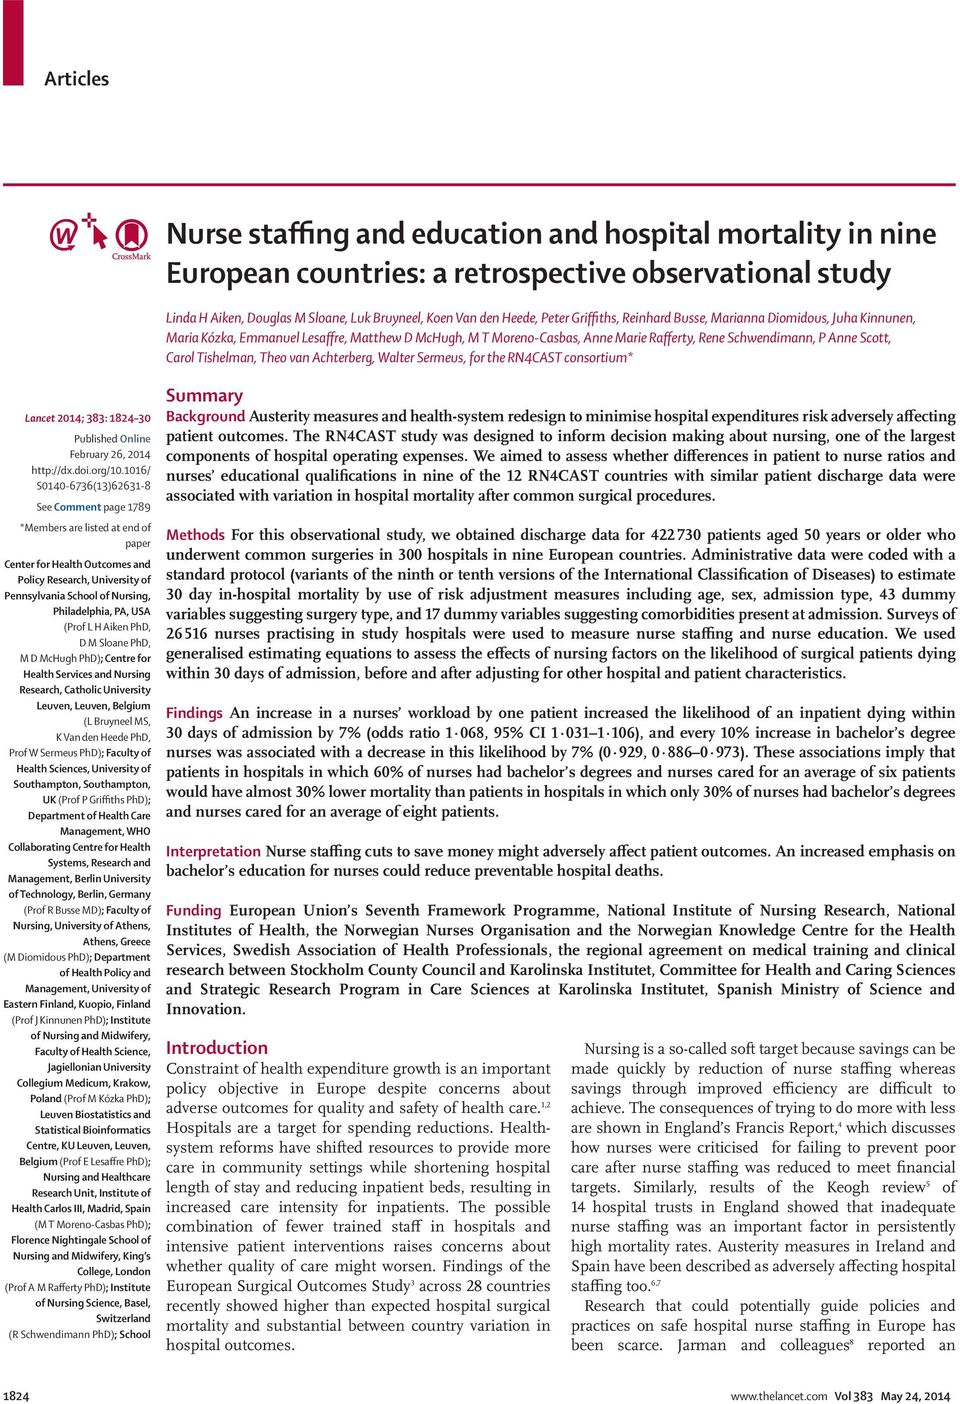 Achterberg, Walter Sermeus, for the RN4CAST consortium* Lancet 2014; 383: 1824 30 Published Online February 26, 2014 http://dx.doi.org/10.